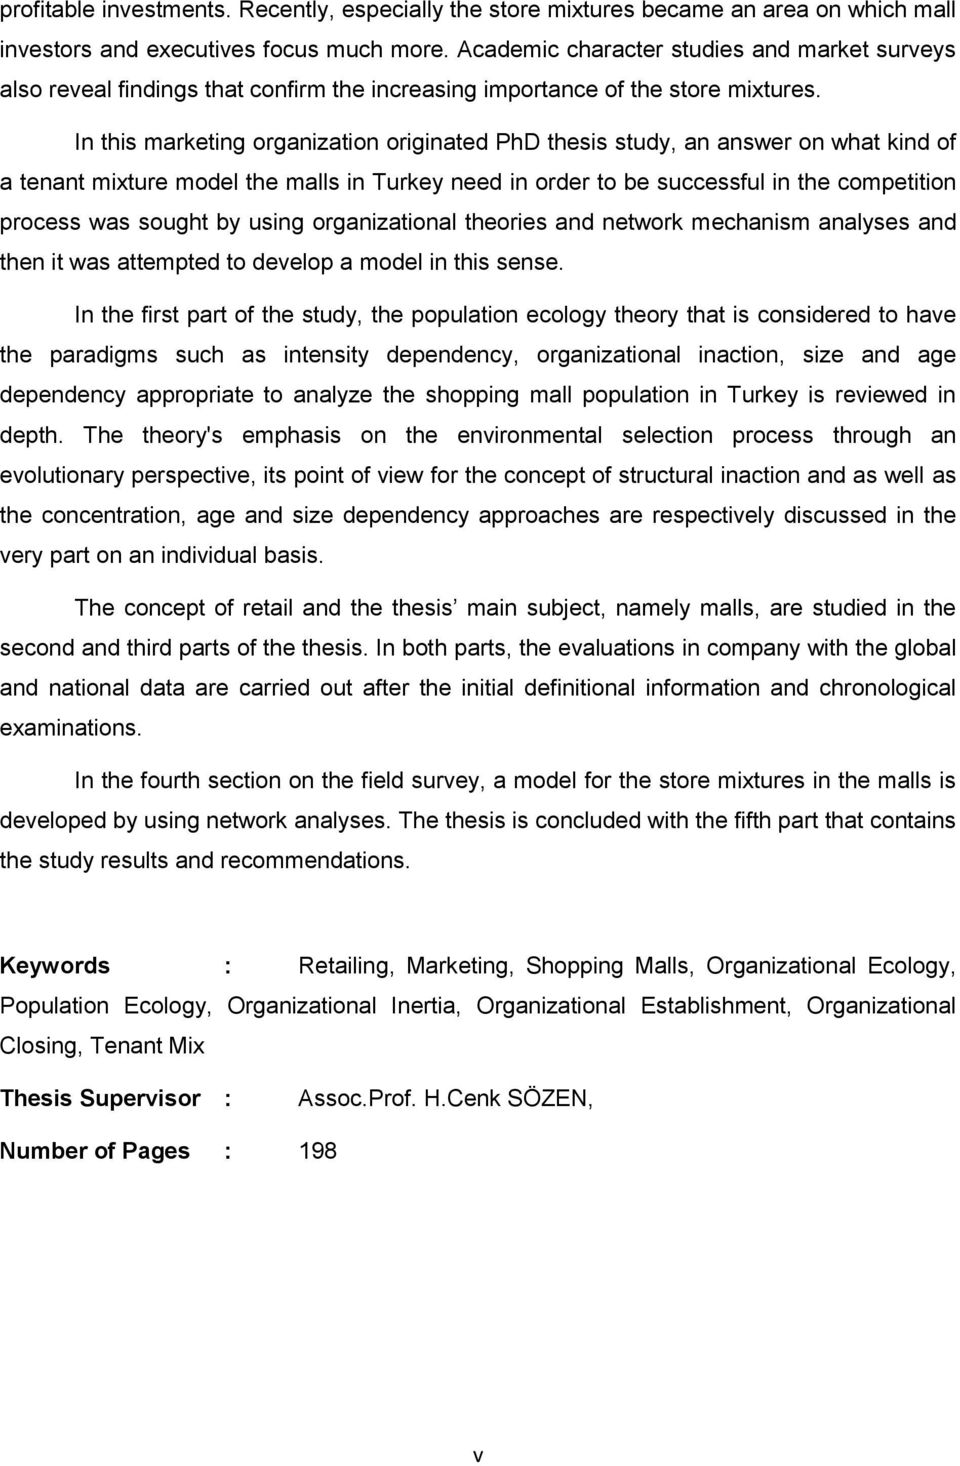 In this marketing organization originated PhD thesis study, an answer on what kind of a tenant mixture model the malls in Turkey need in order to be successful in the competition process was sought